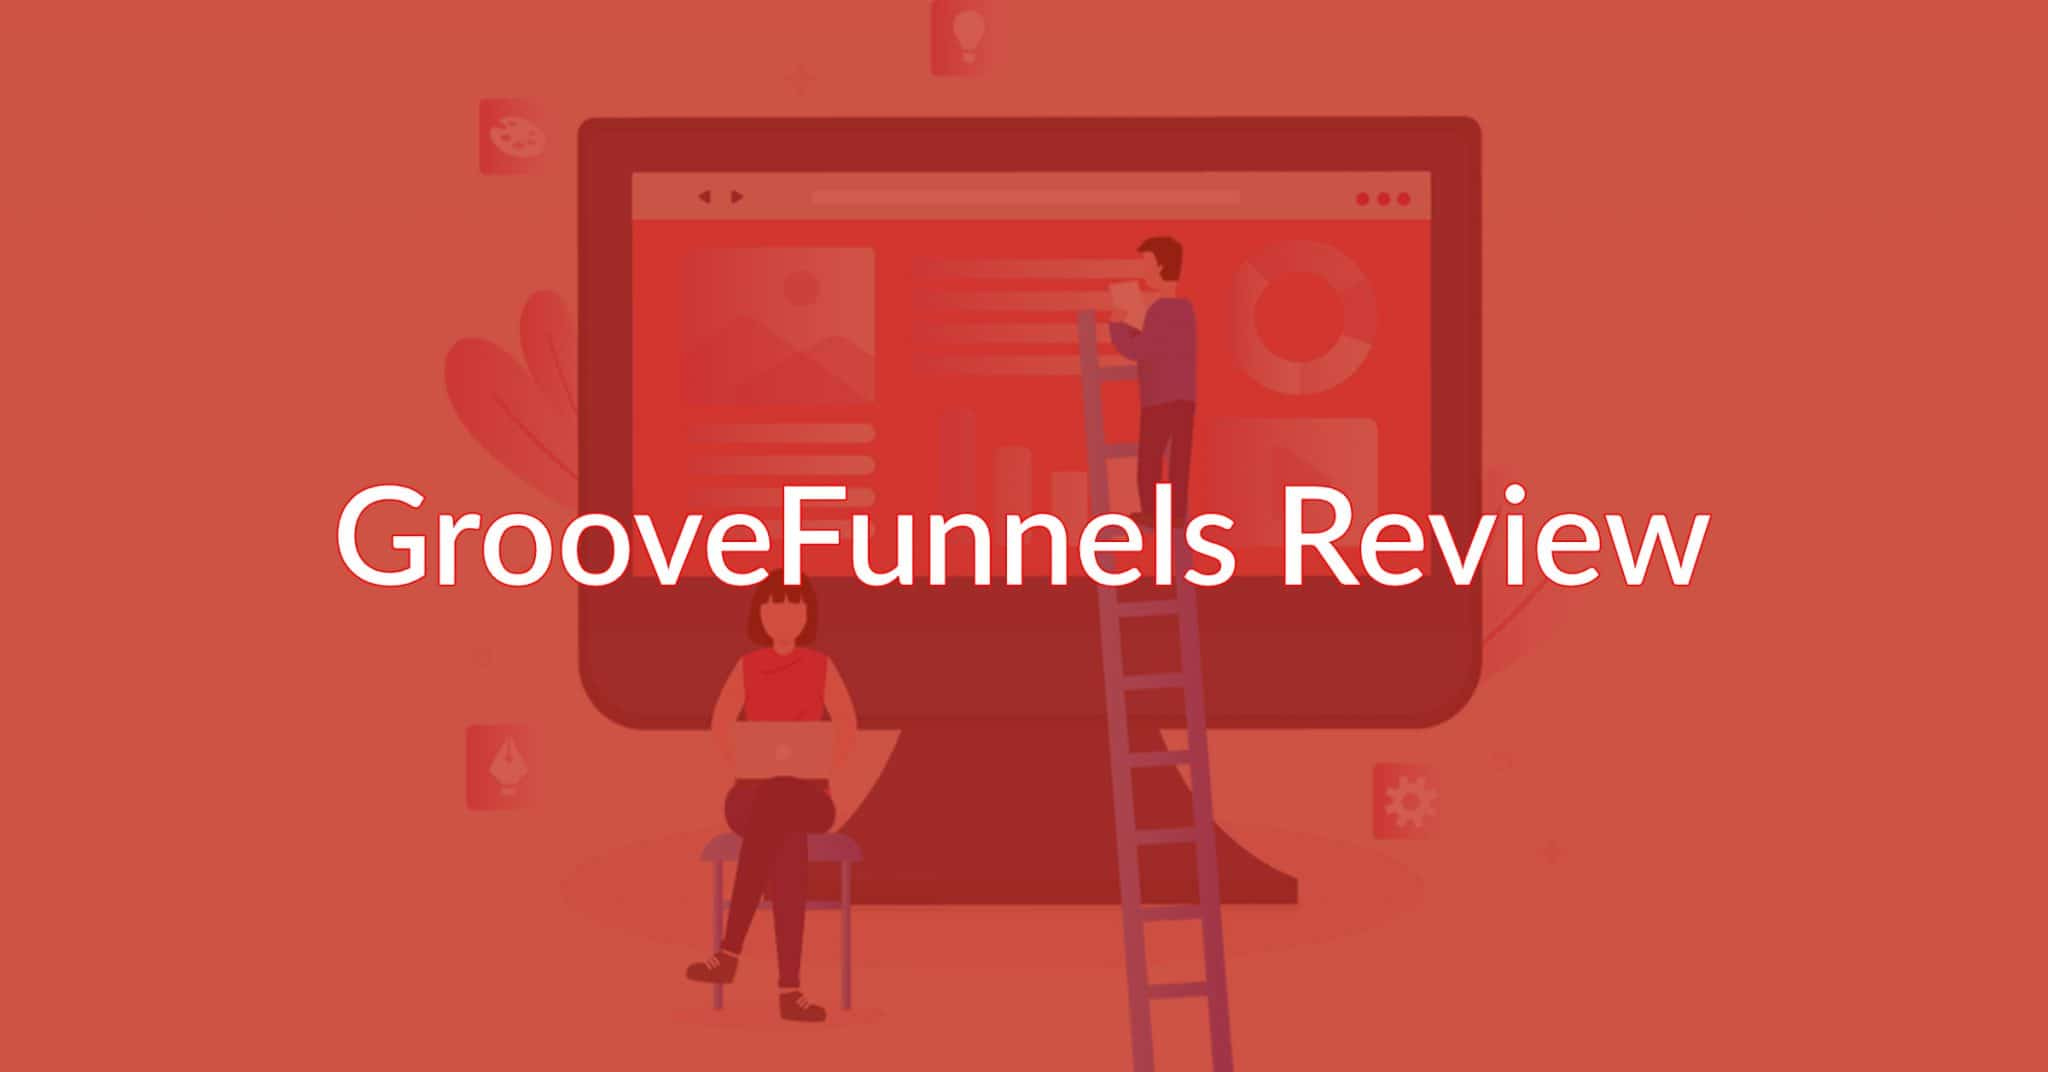 GrooveFunnels Review: Is This New Platform Worth Trying?